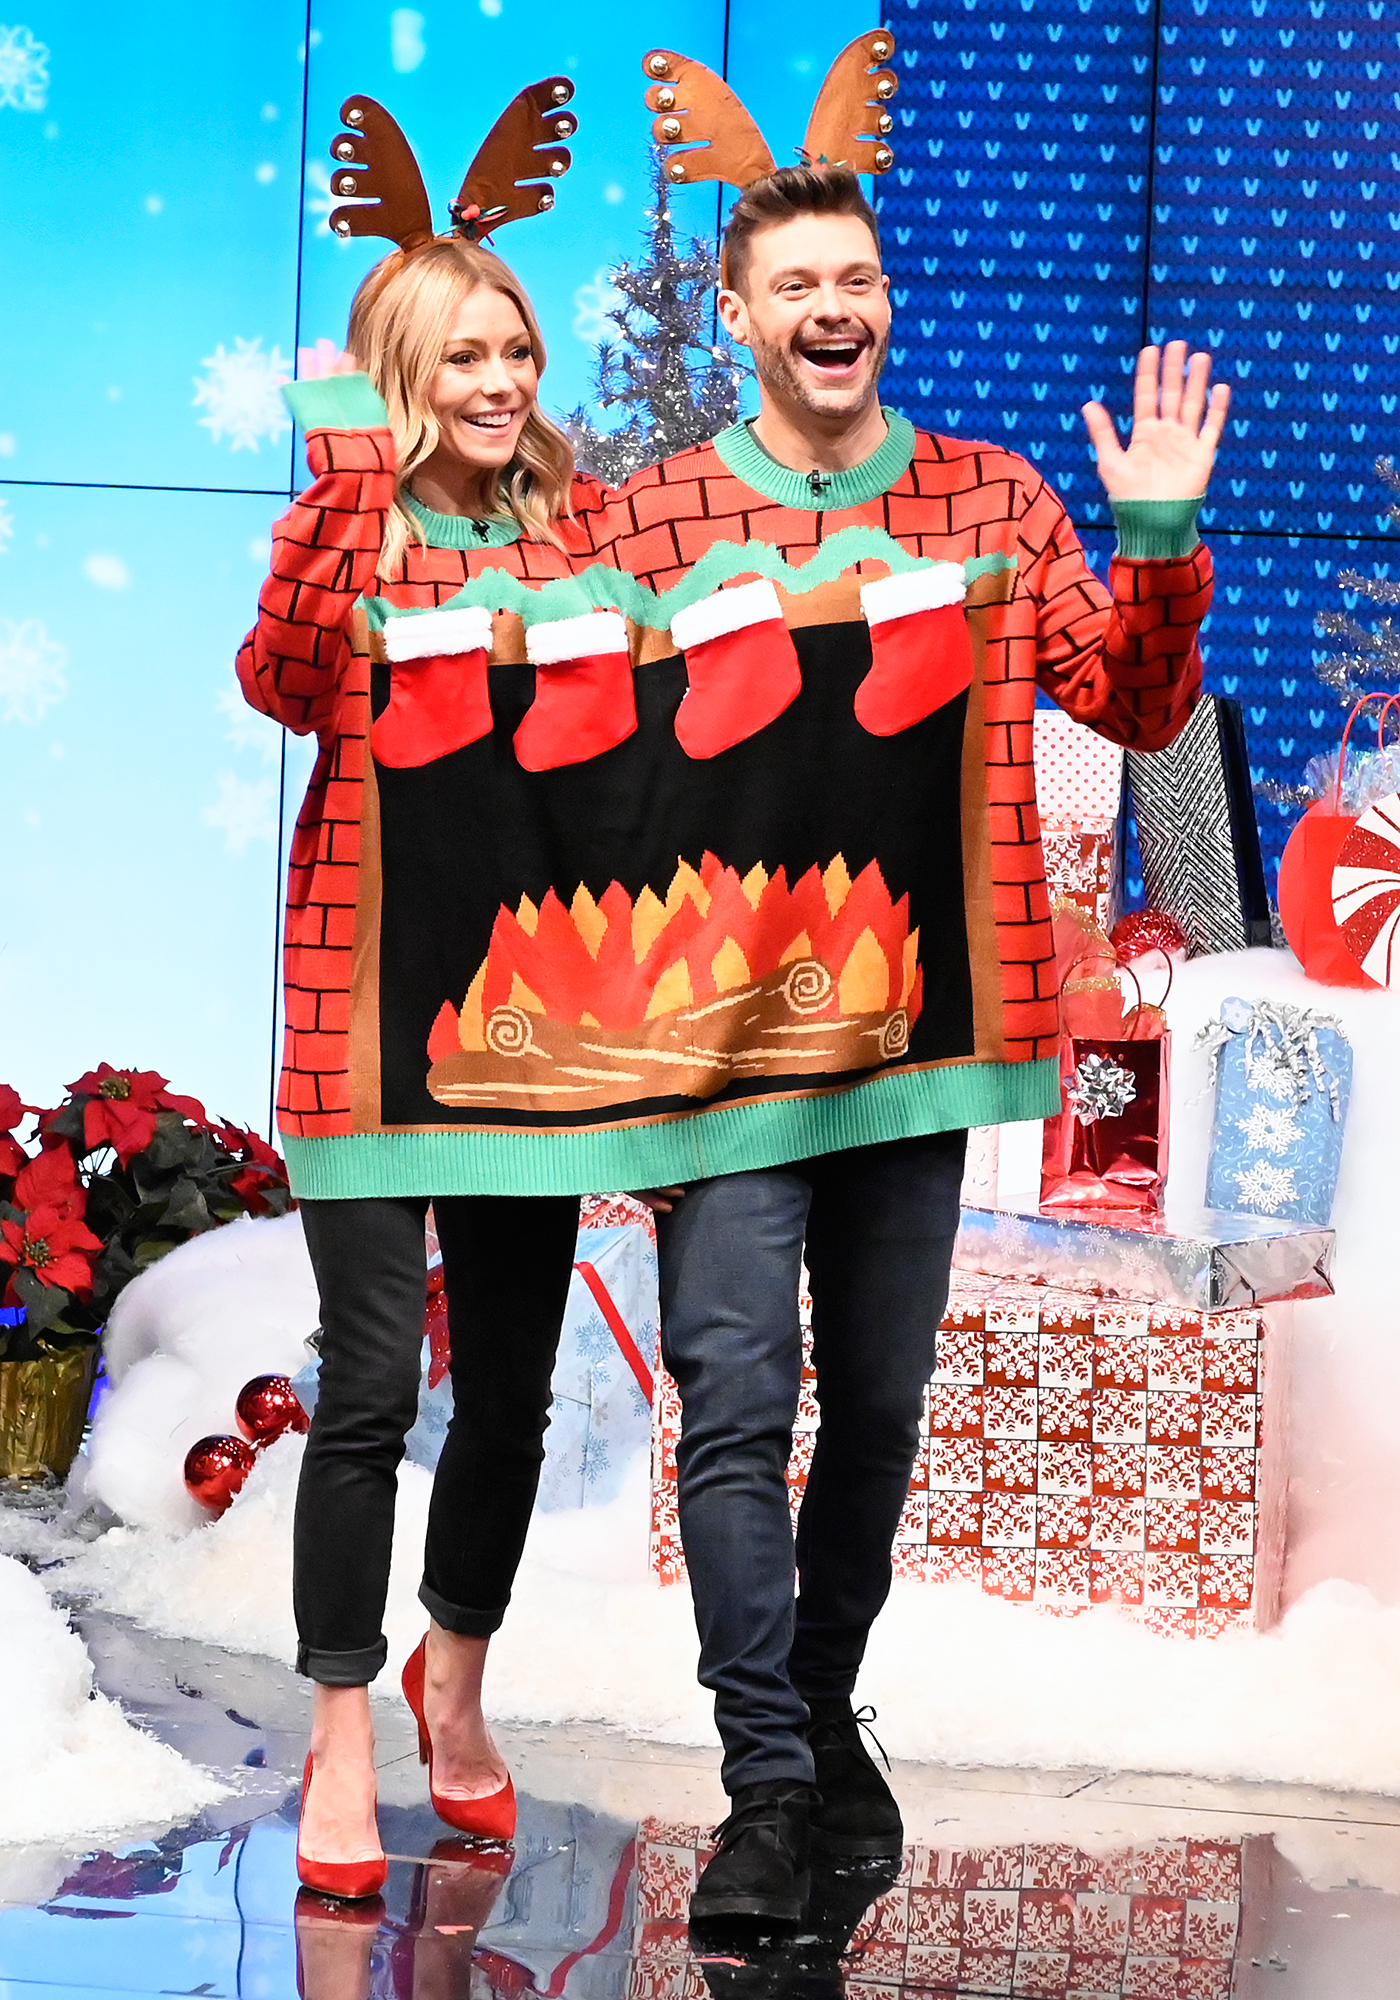 Kelly Ripa Ryan Seacrest Ugly Christmas Sweater - The Live With Kelly and Ryan cohosts took the ugly sweater game to the next level.